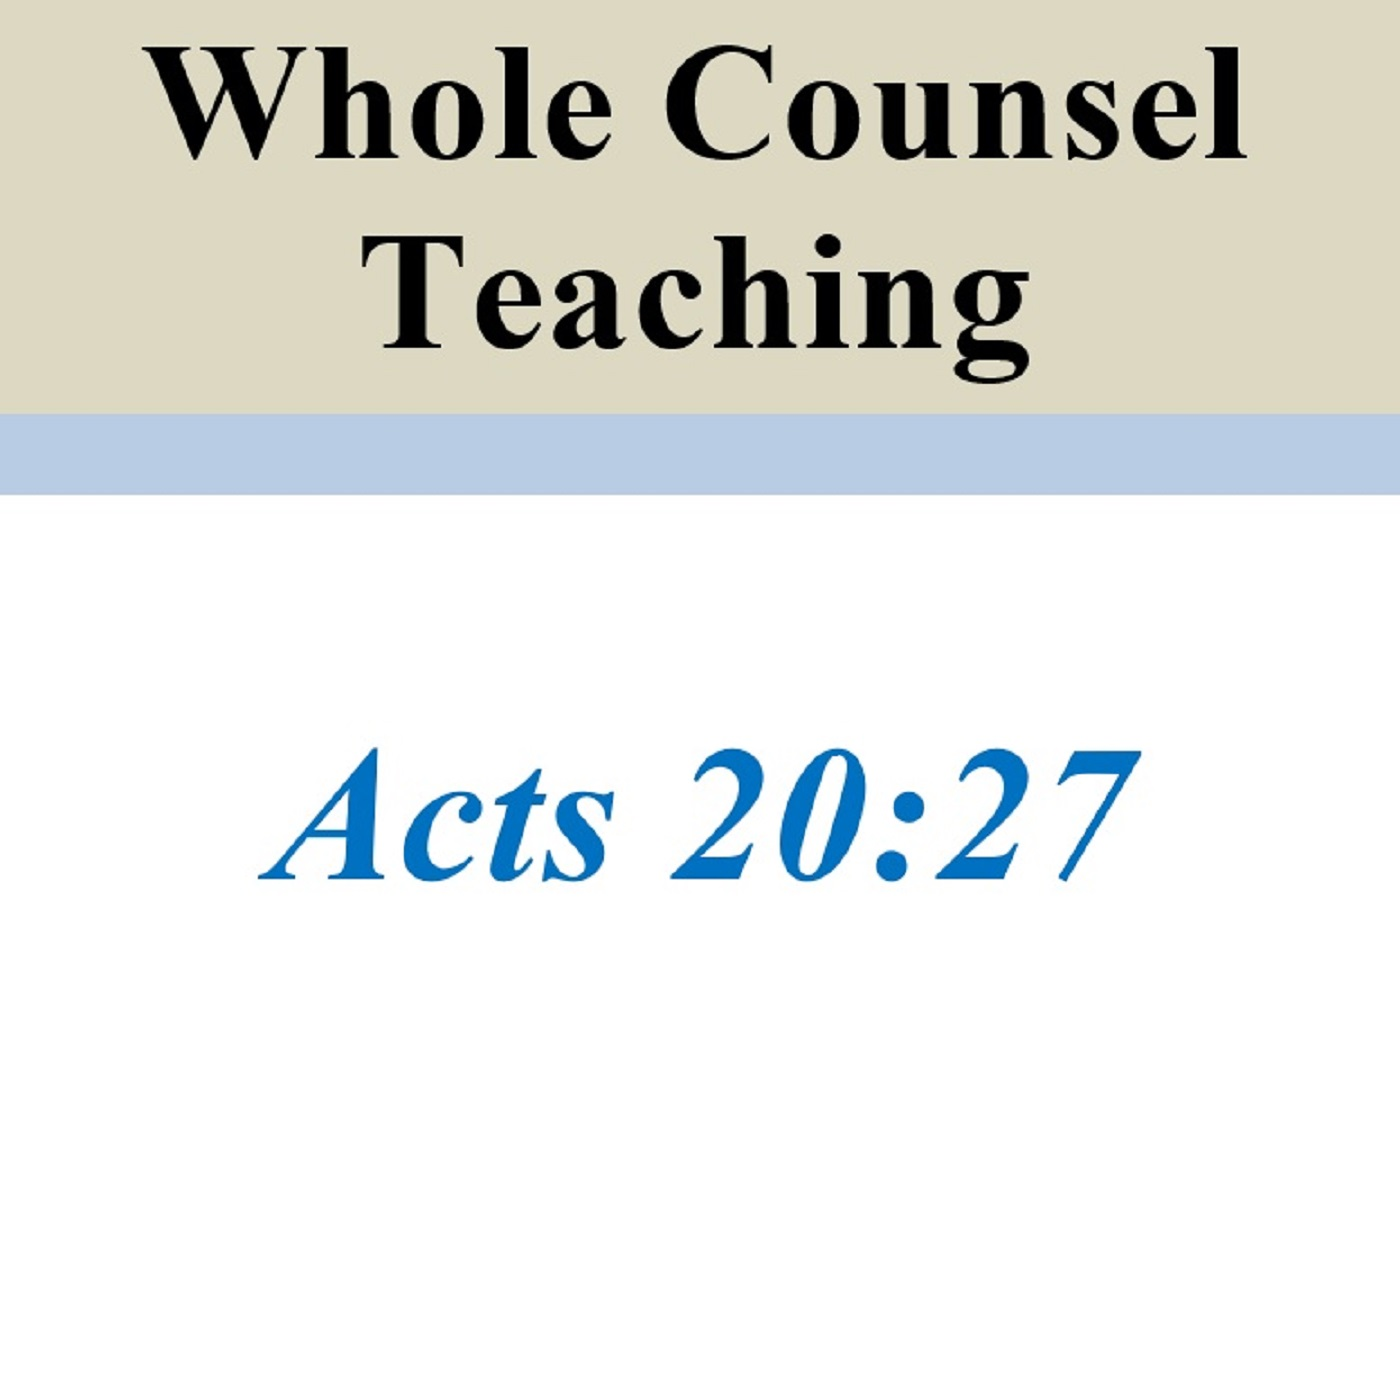 Whole Counsel Teaching